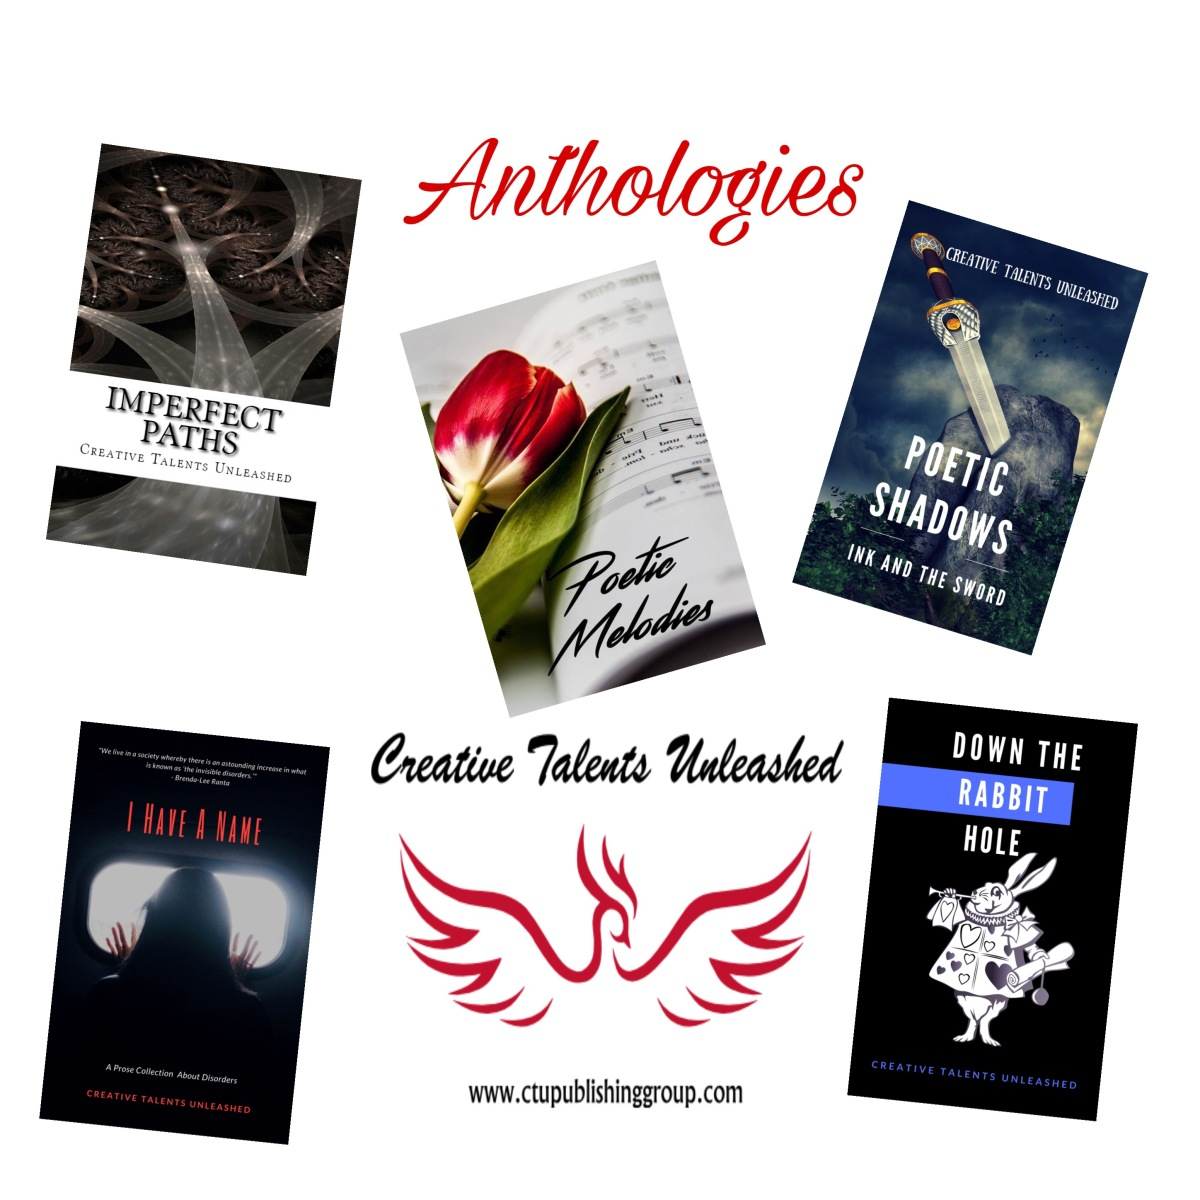 LAST CHANCE DISCOUNT SALE – ALL ANTHOLOGY PUBLICATIONS 25% Off Offer Expires 10/31/17